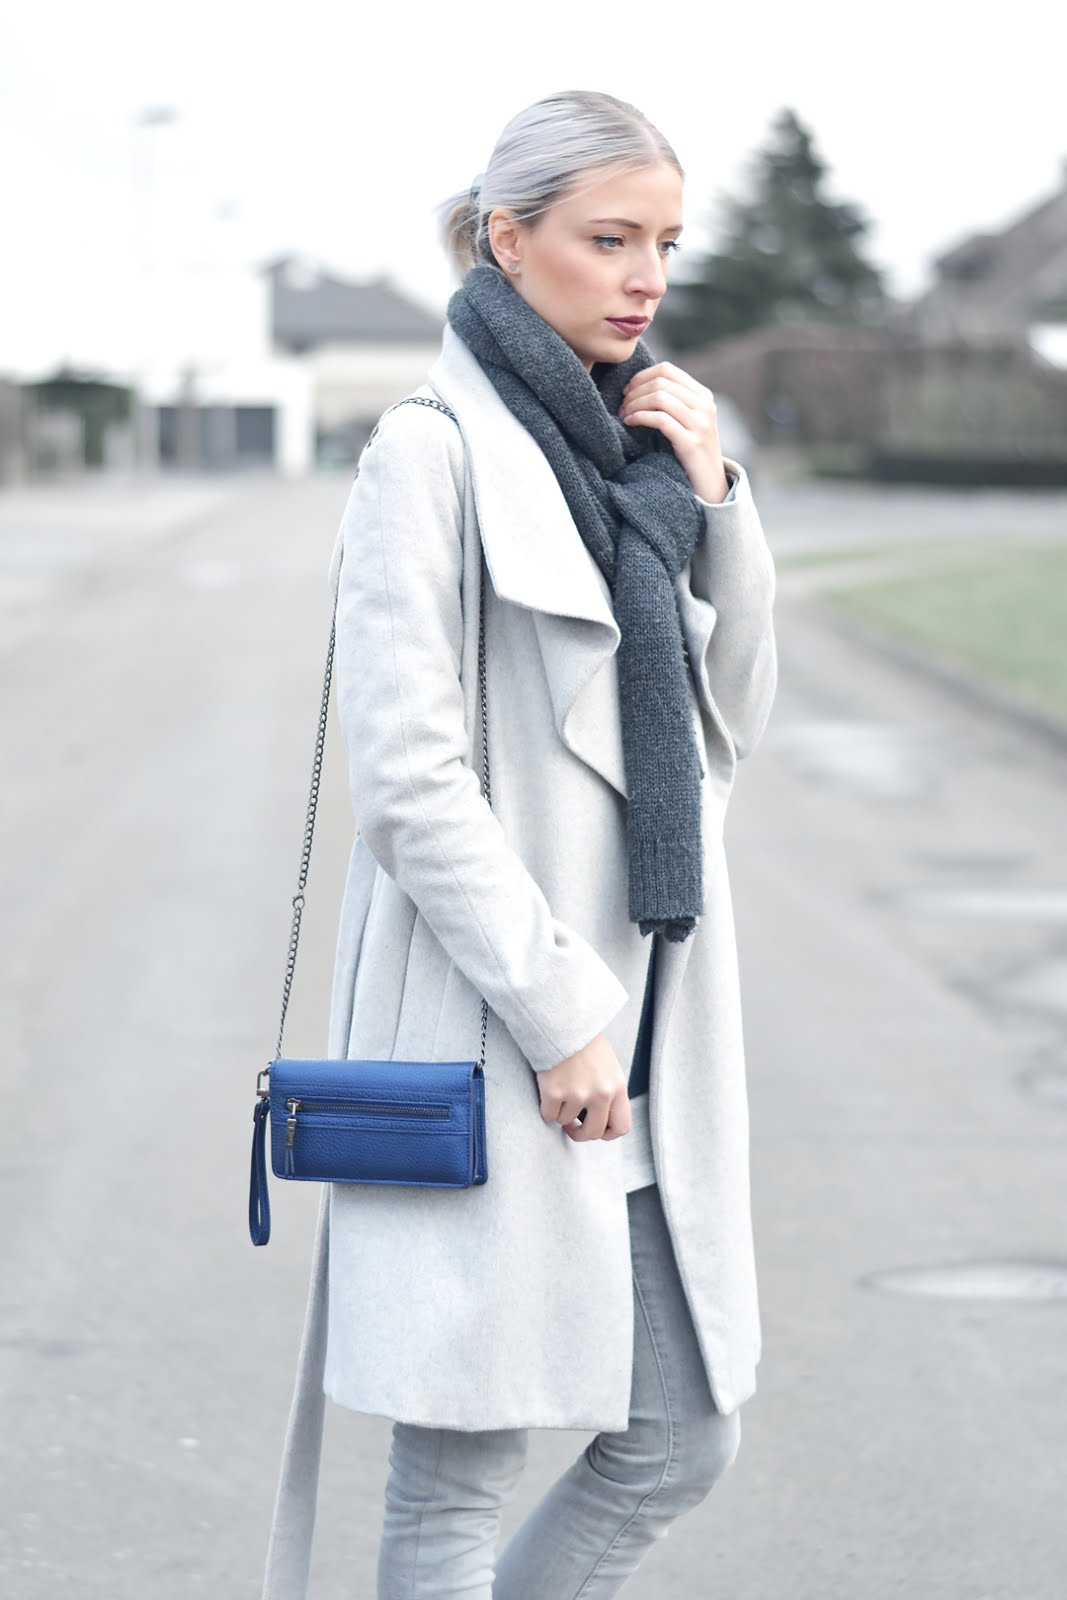 Mango grey coat, cheap monday scarf, blue sweater primark, zara grey slip on, celine slip on, monochrome outfit, trend, inspiration, ootd, belgian fashion blogger, belgische mode blogger